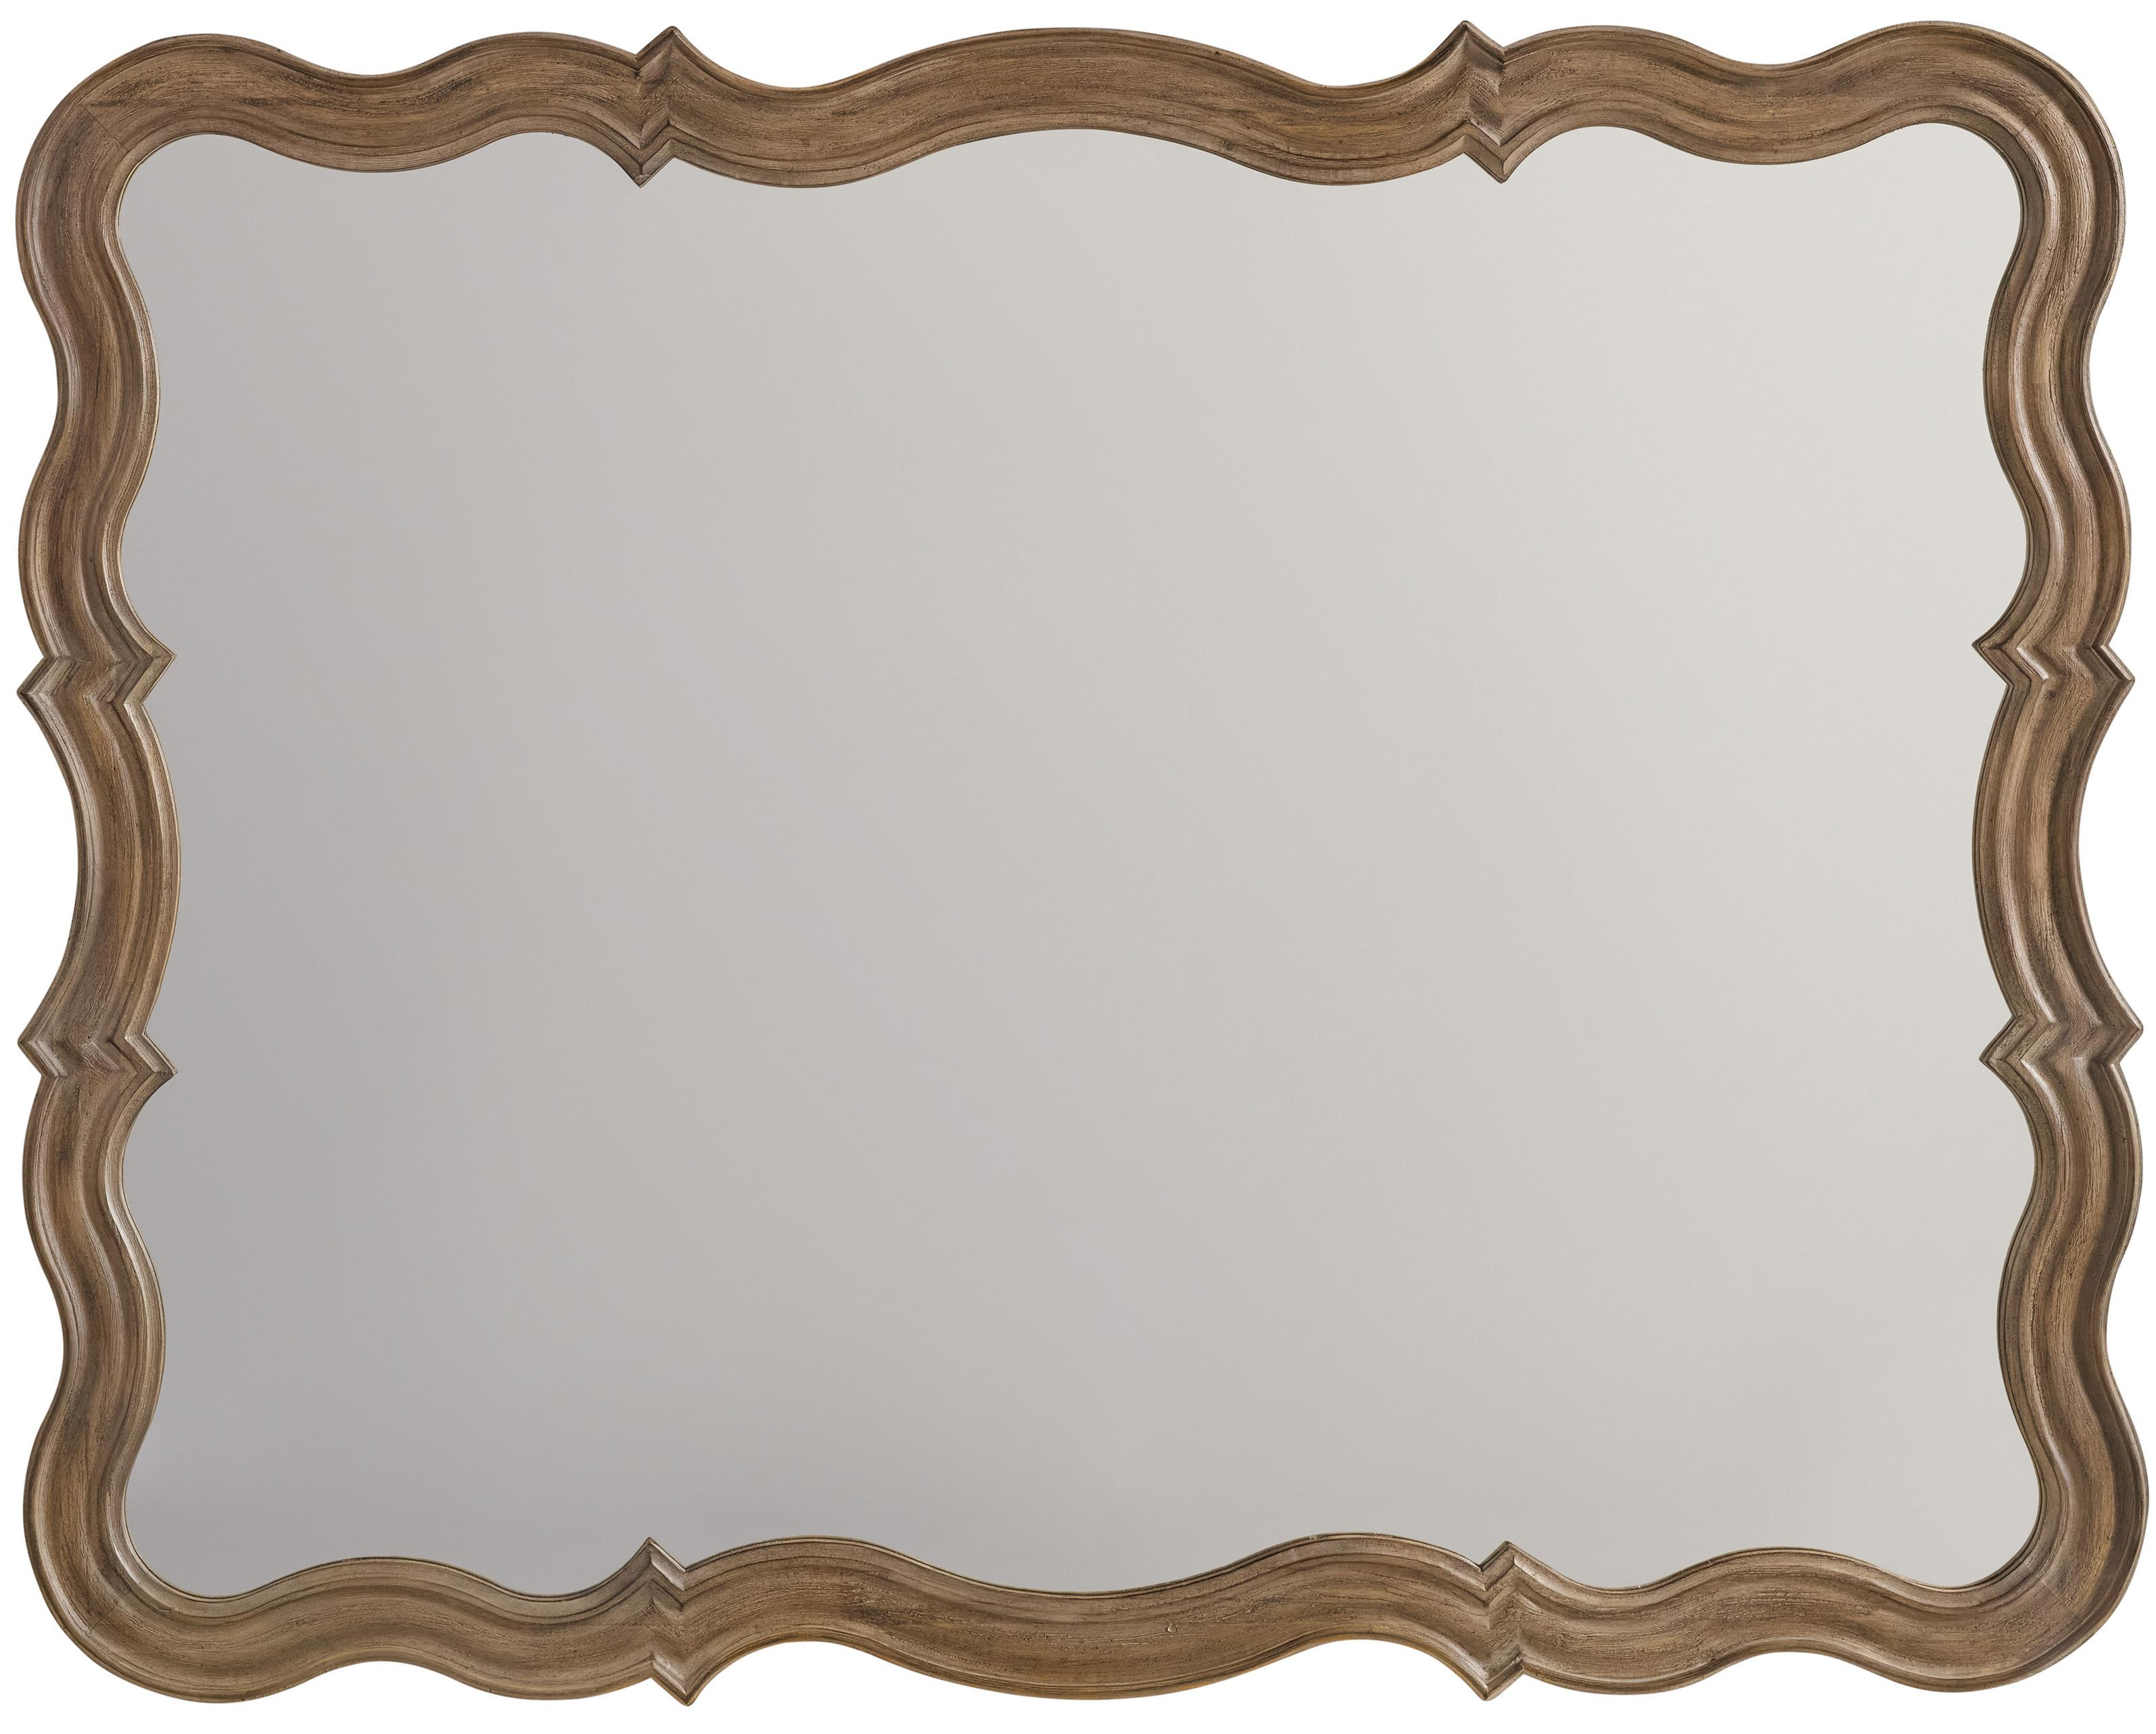 Hooker Furniture Corsica Mirror - Item Number: 5180-90004